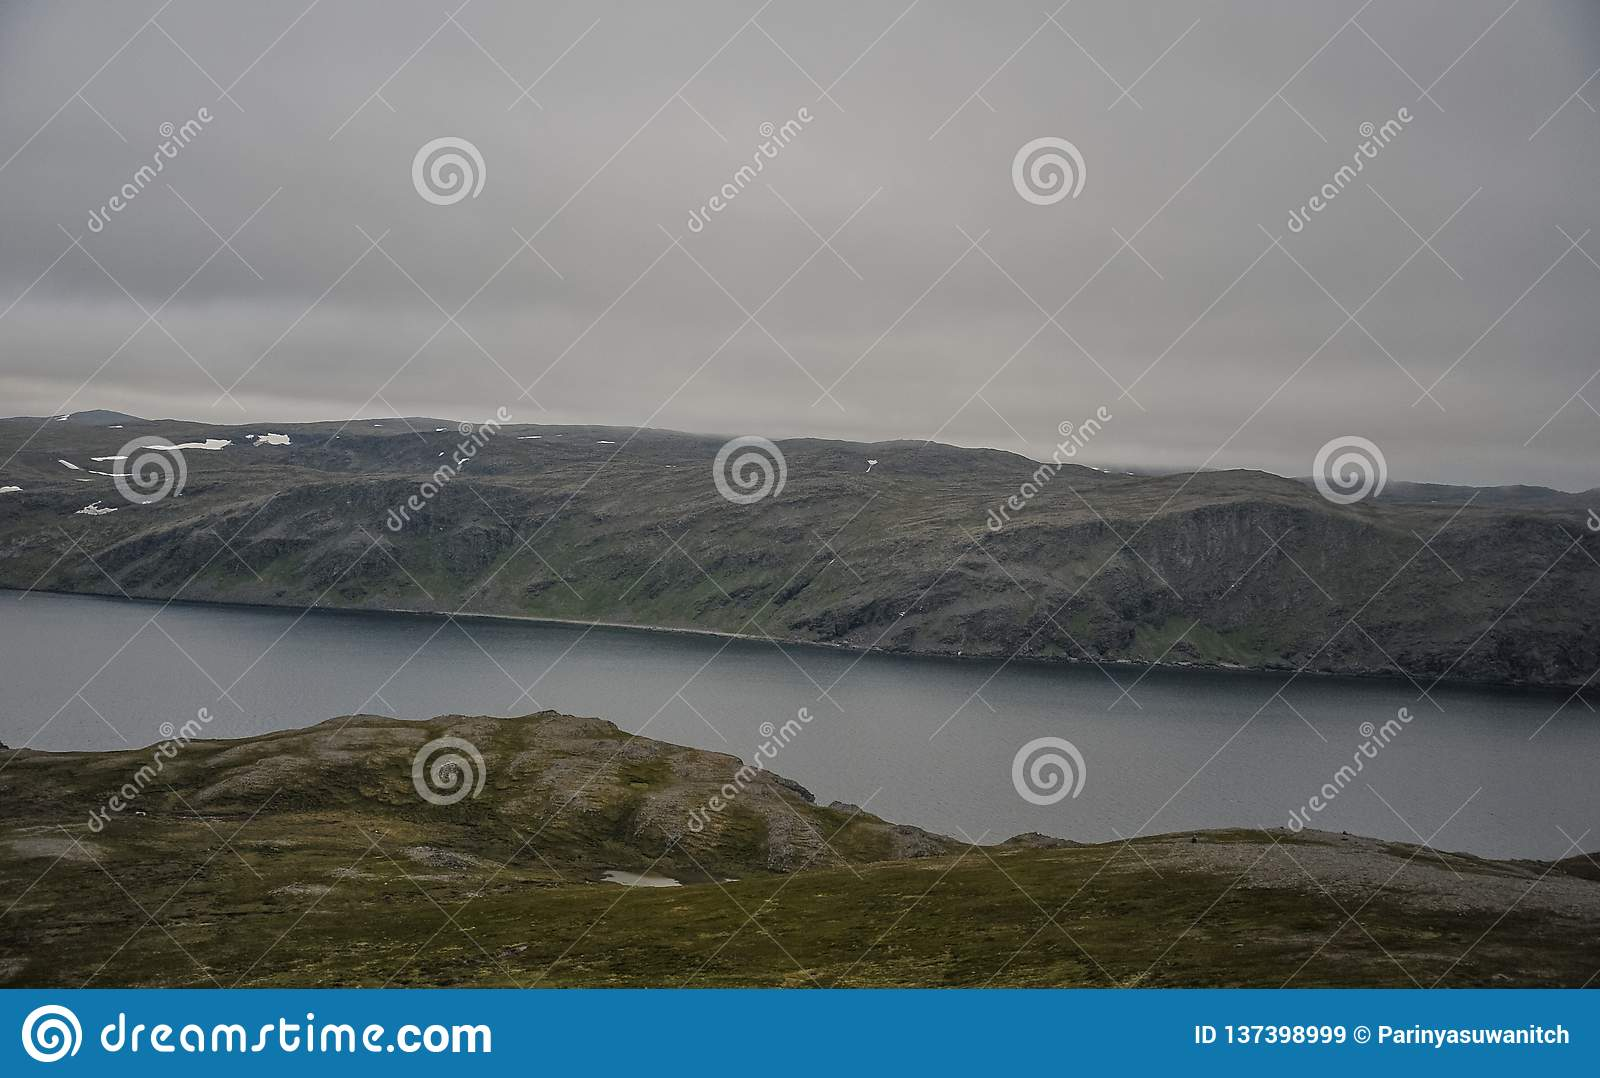 Landscape view of Magerøya island in Finnmark county on the way to North Cape Nordkapp at midnight time in Norway